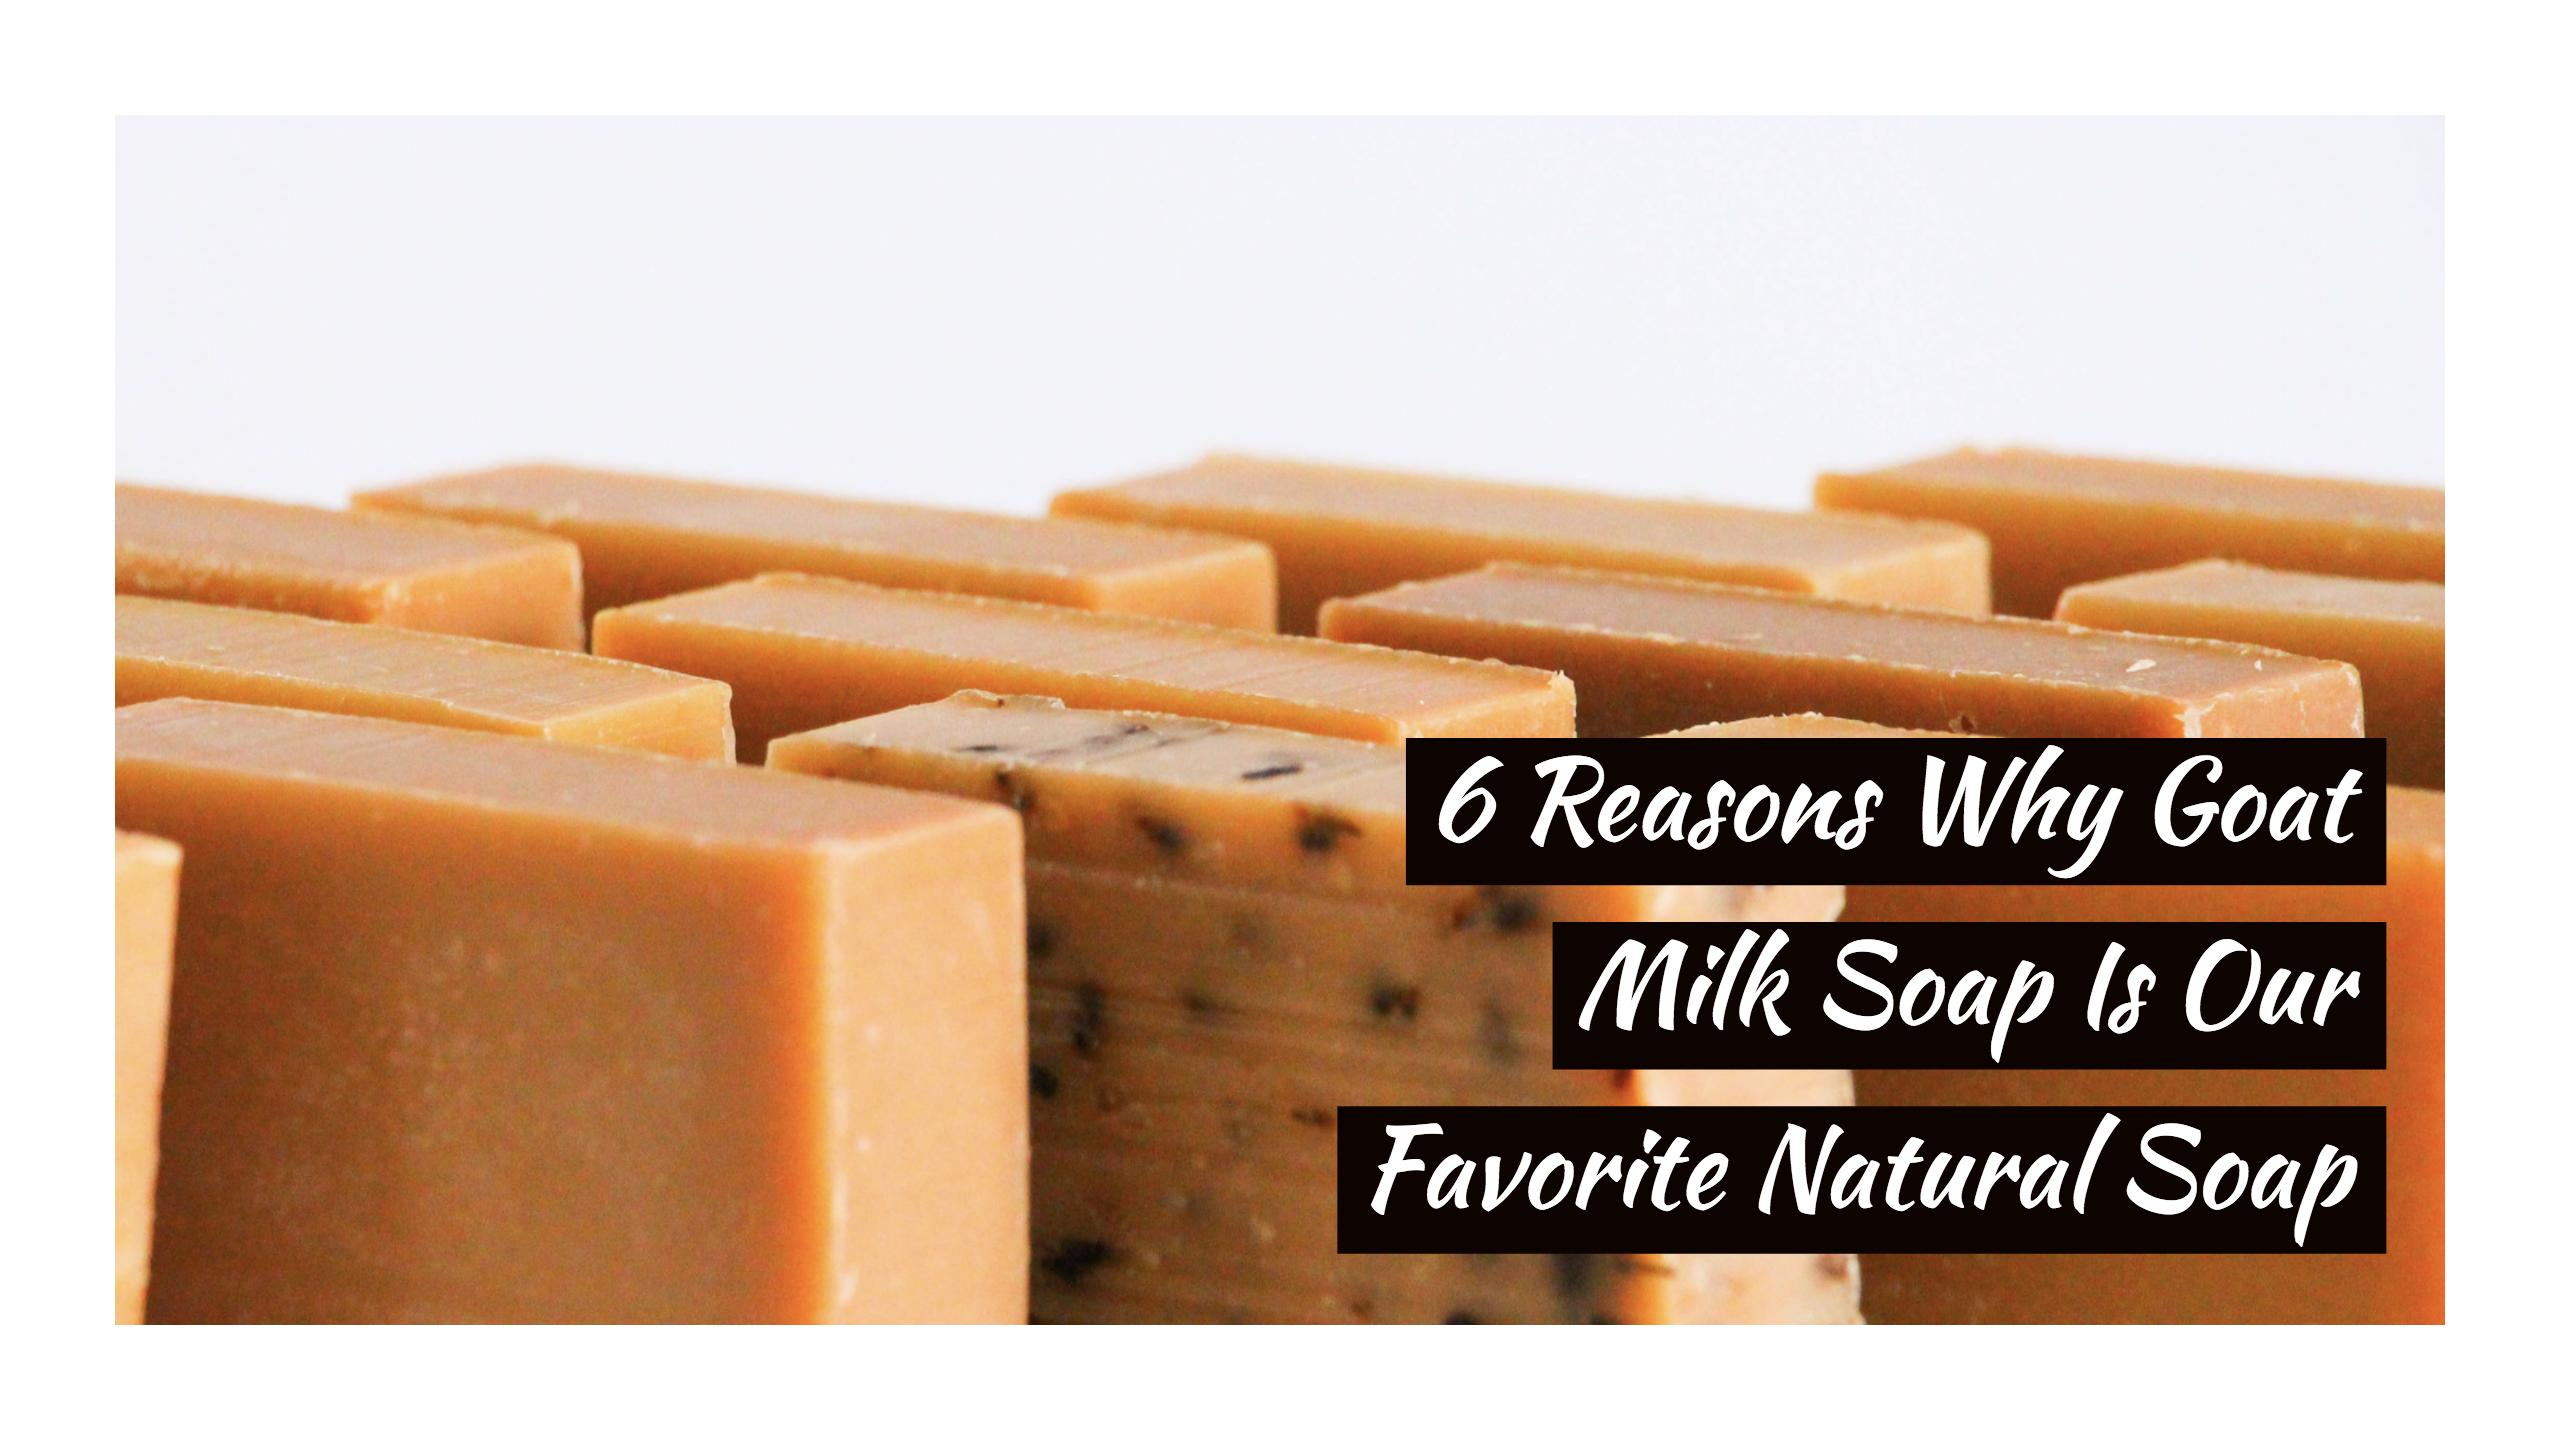 6 Reasons to Love Goat Milk Soap